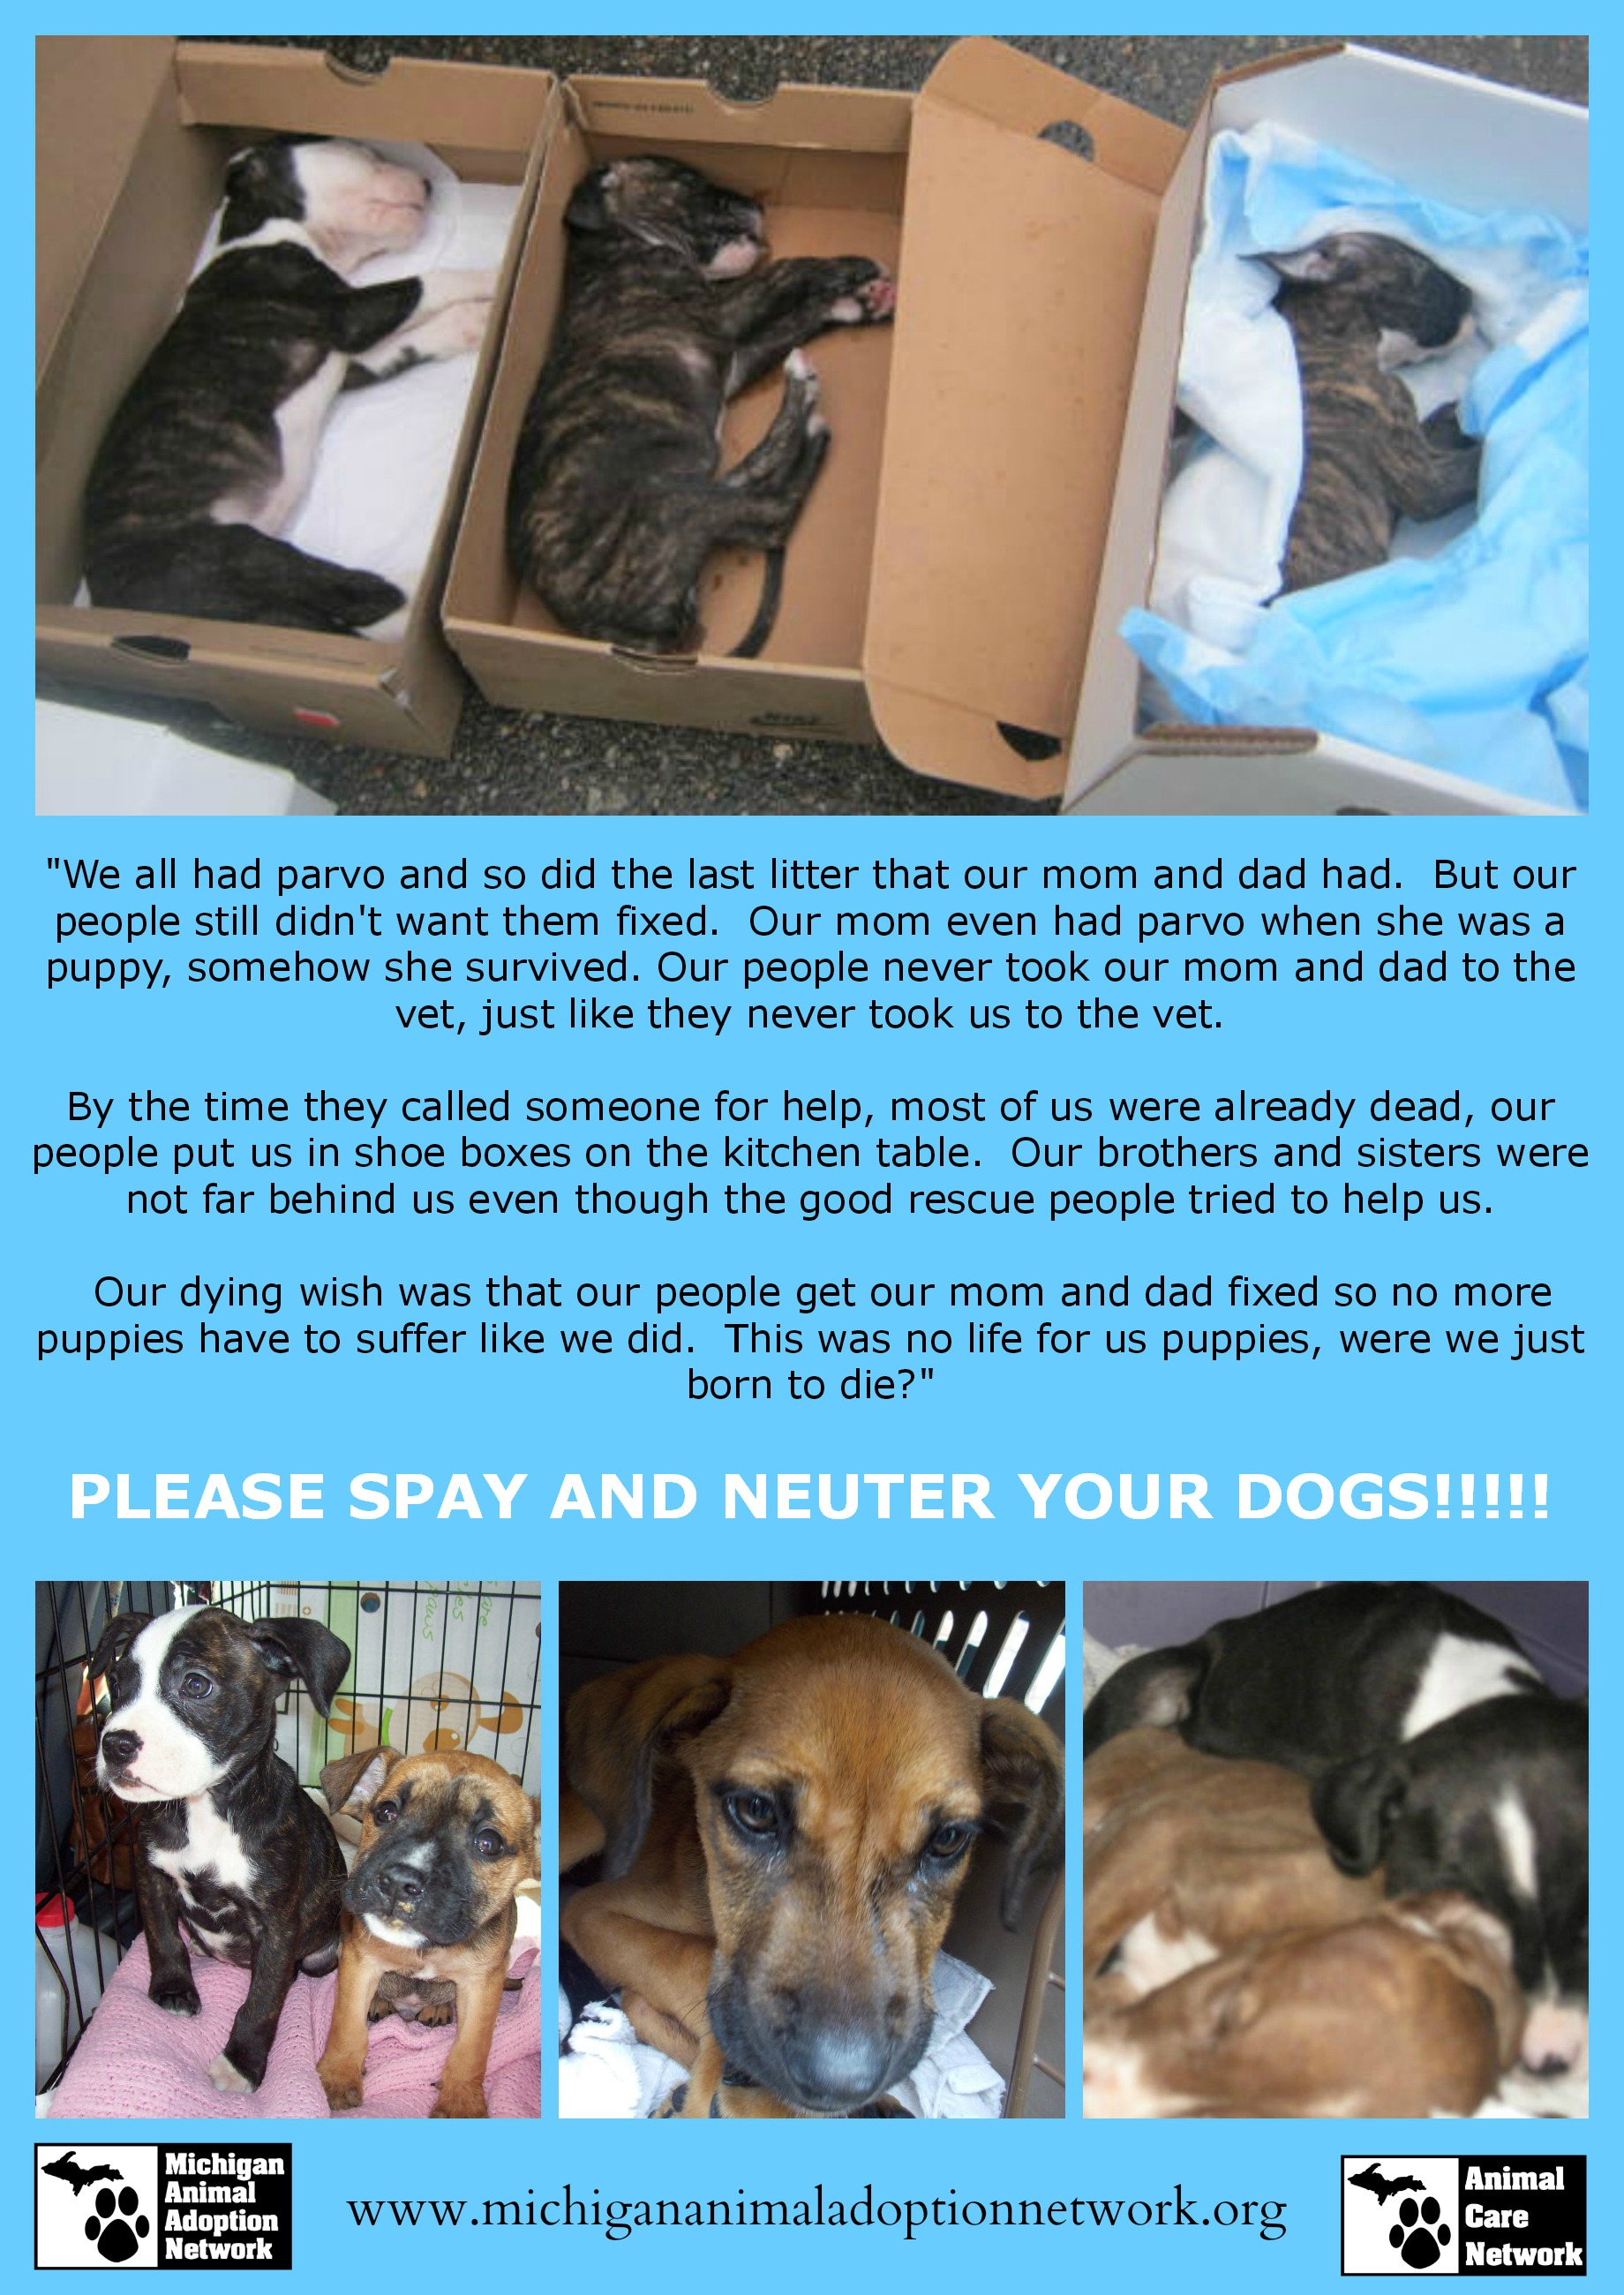 Spay and neuter puppy PicMonkey Collage